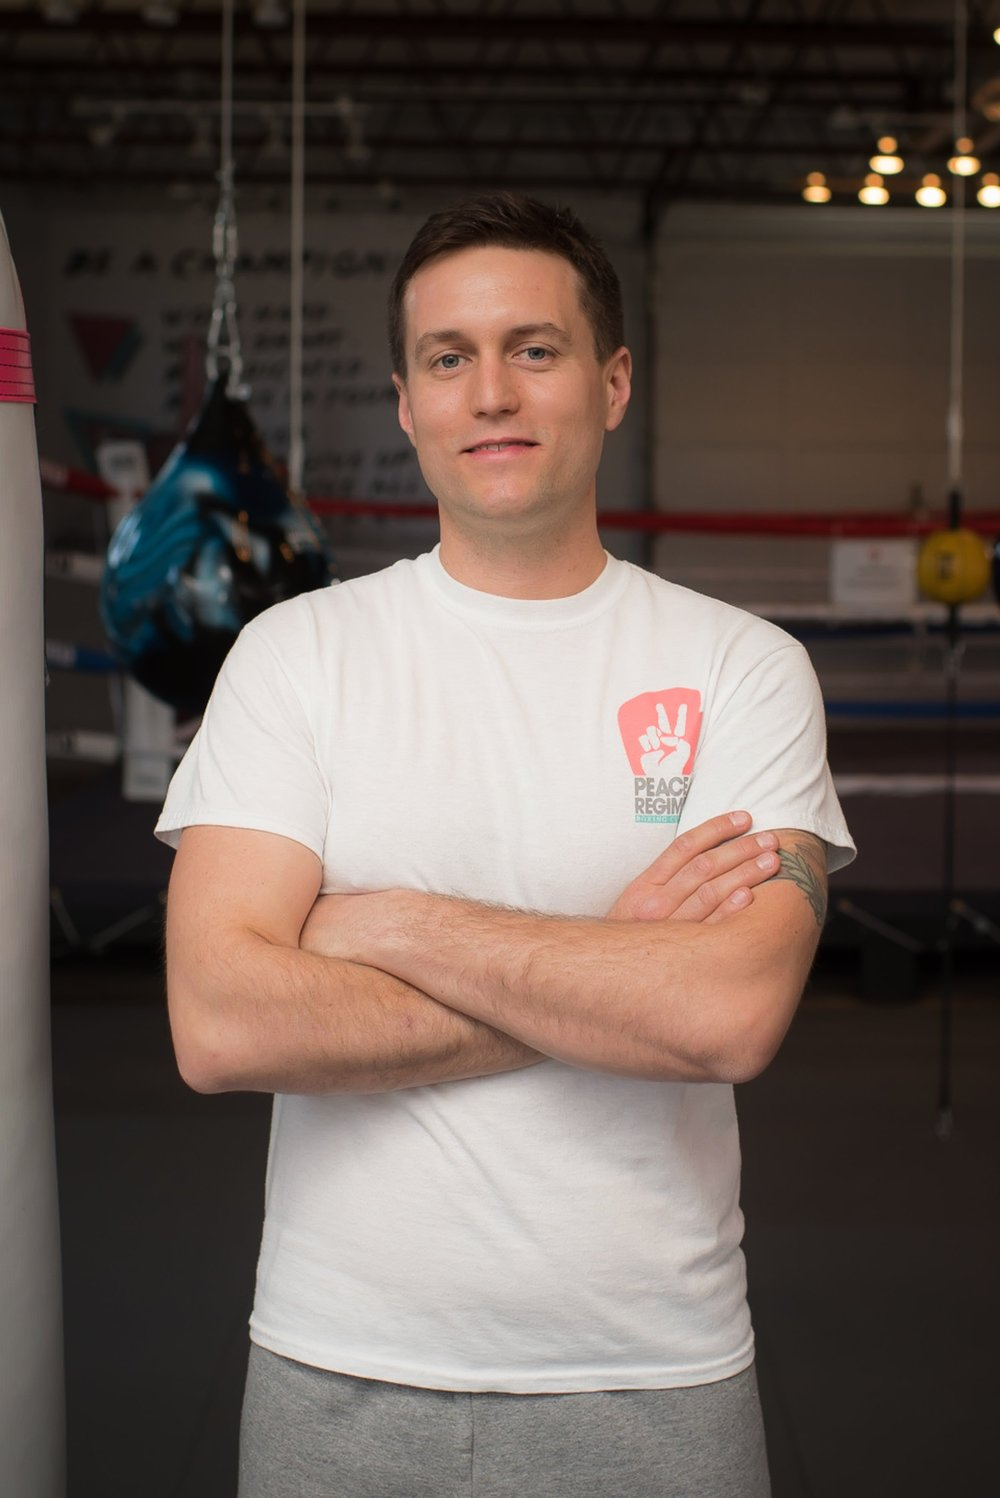 Andrew Palmer - Head Boxing Coach